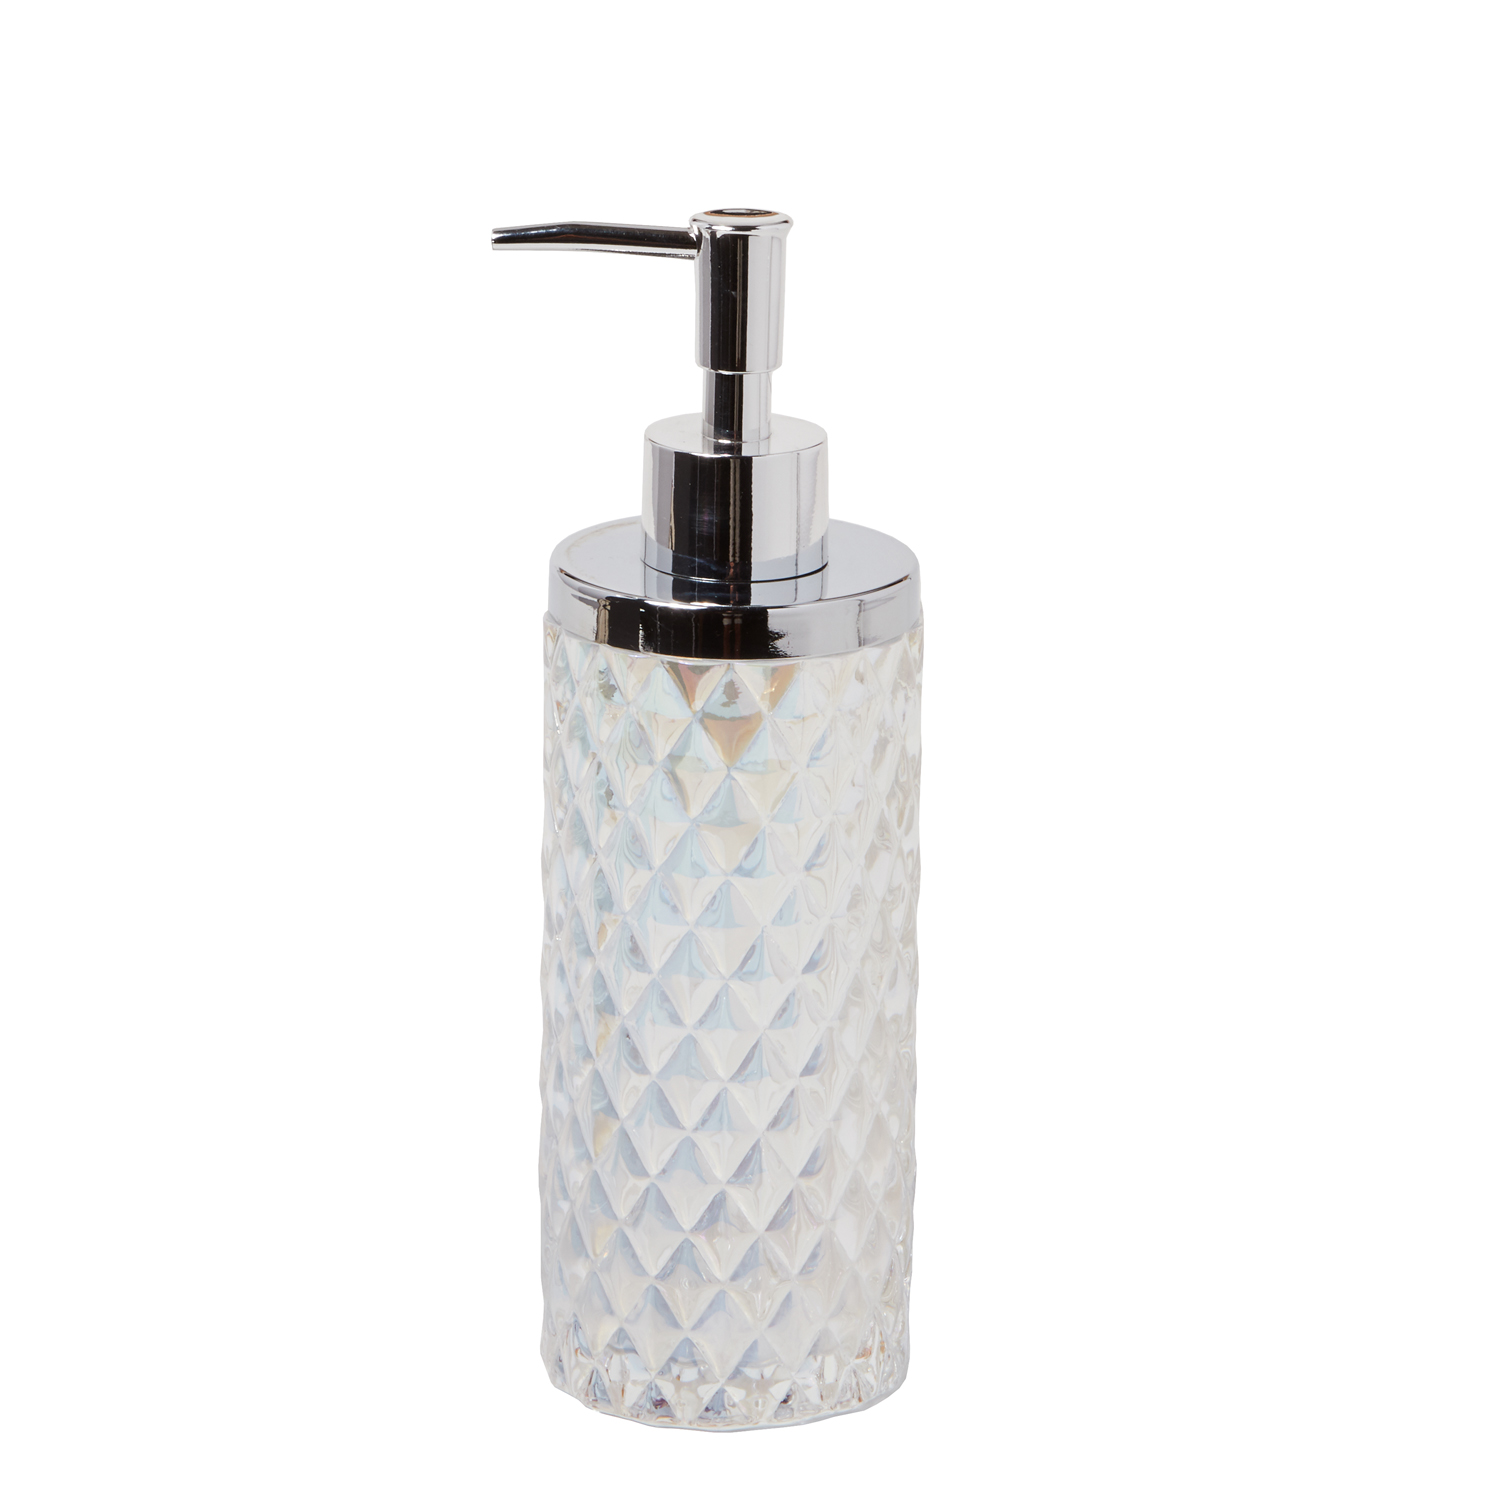 Frosted White Glass Lotion Dispenser